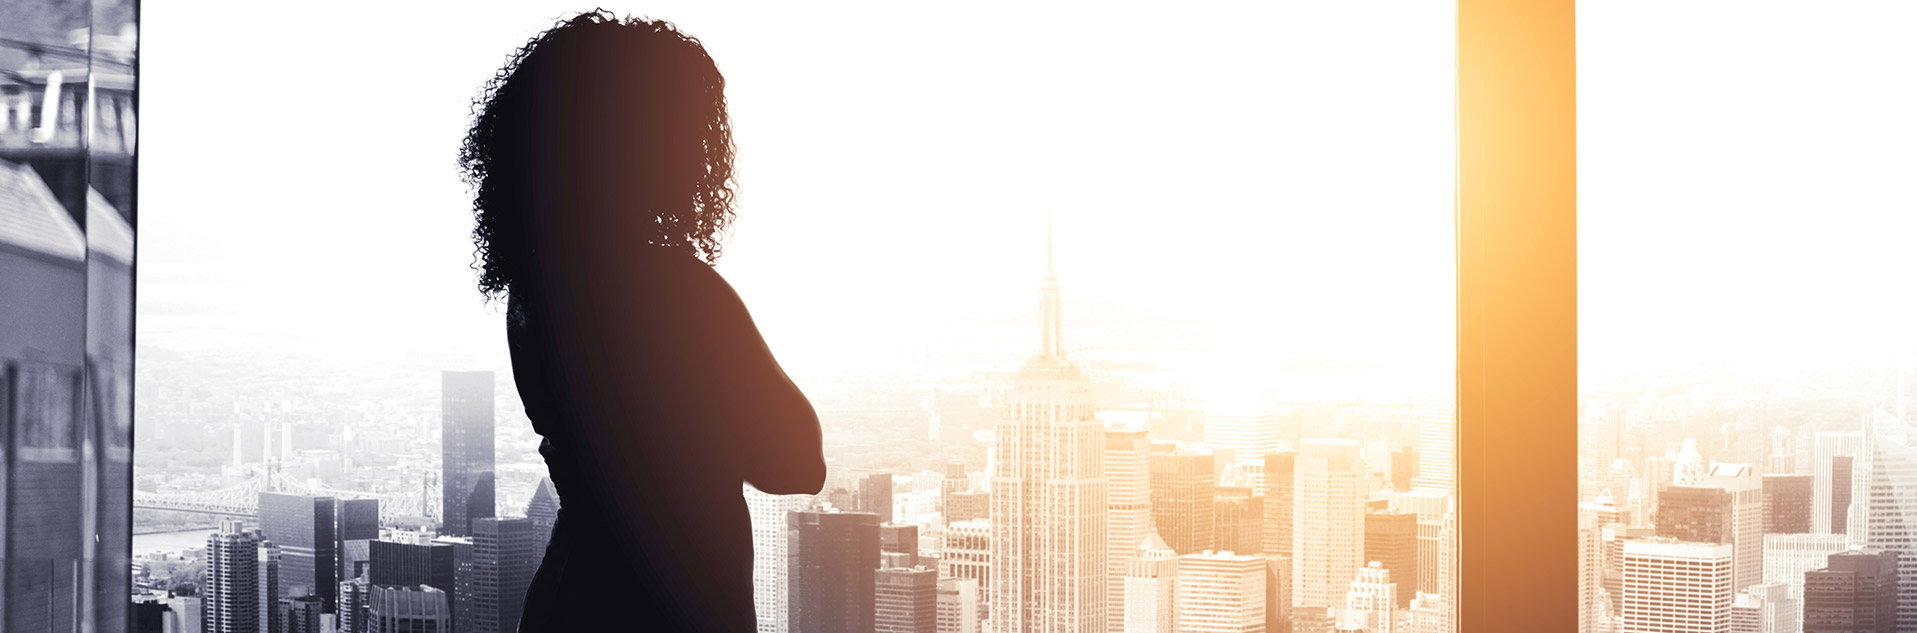 Business woman looking out window at New York City